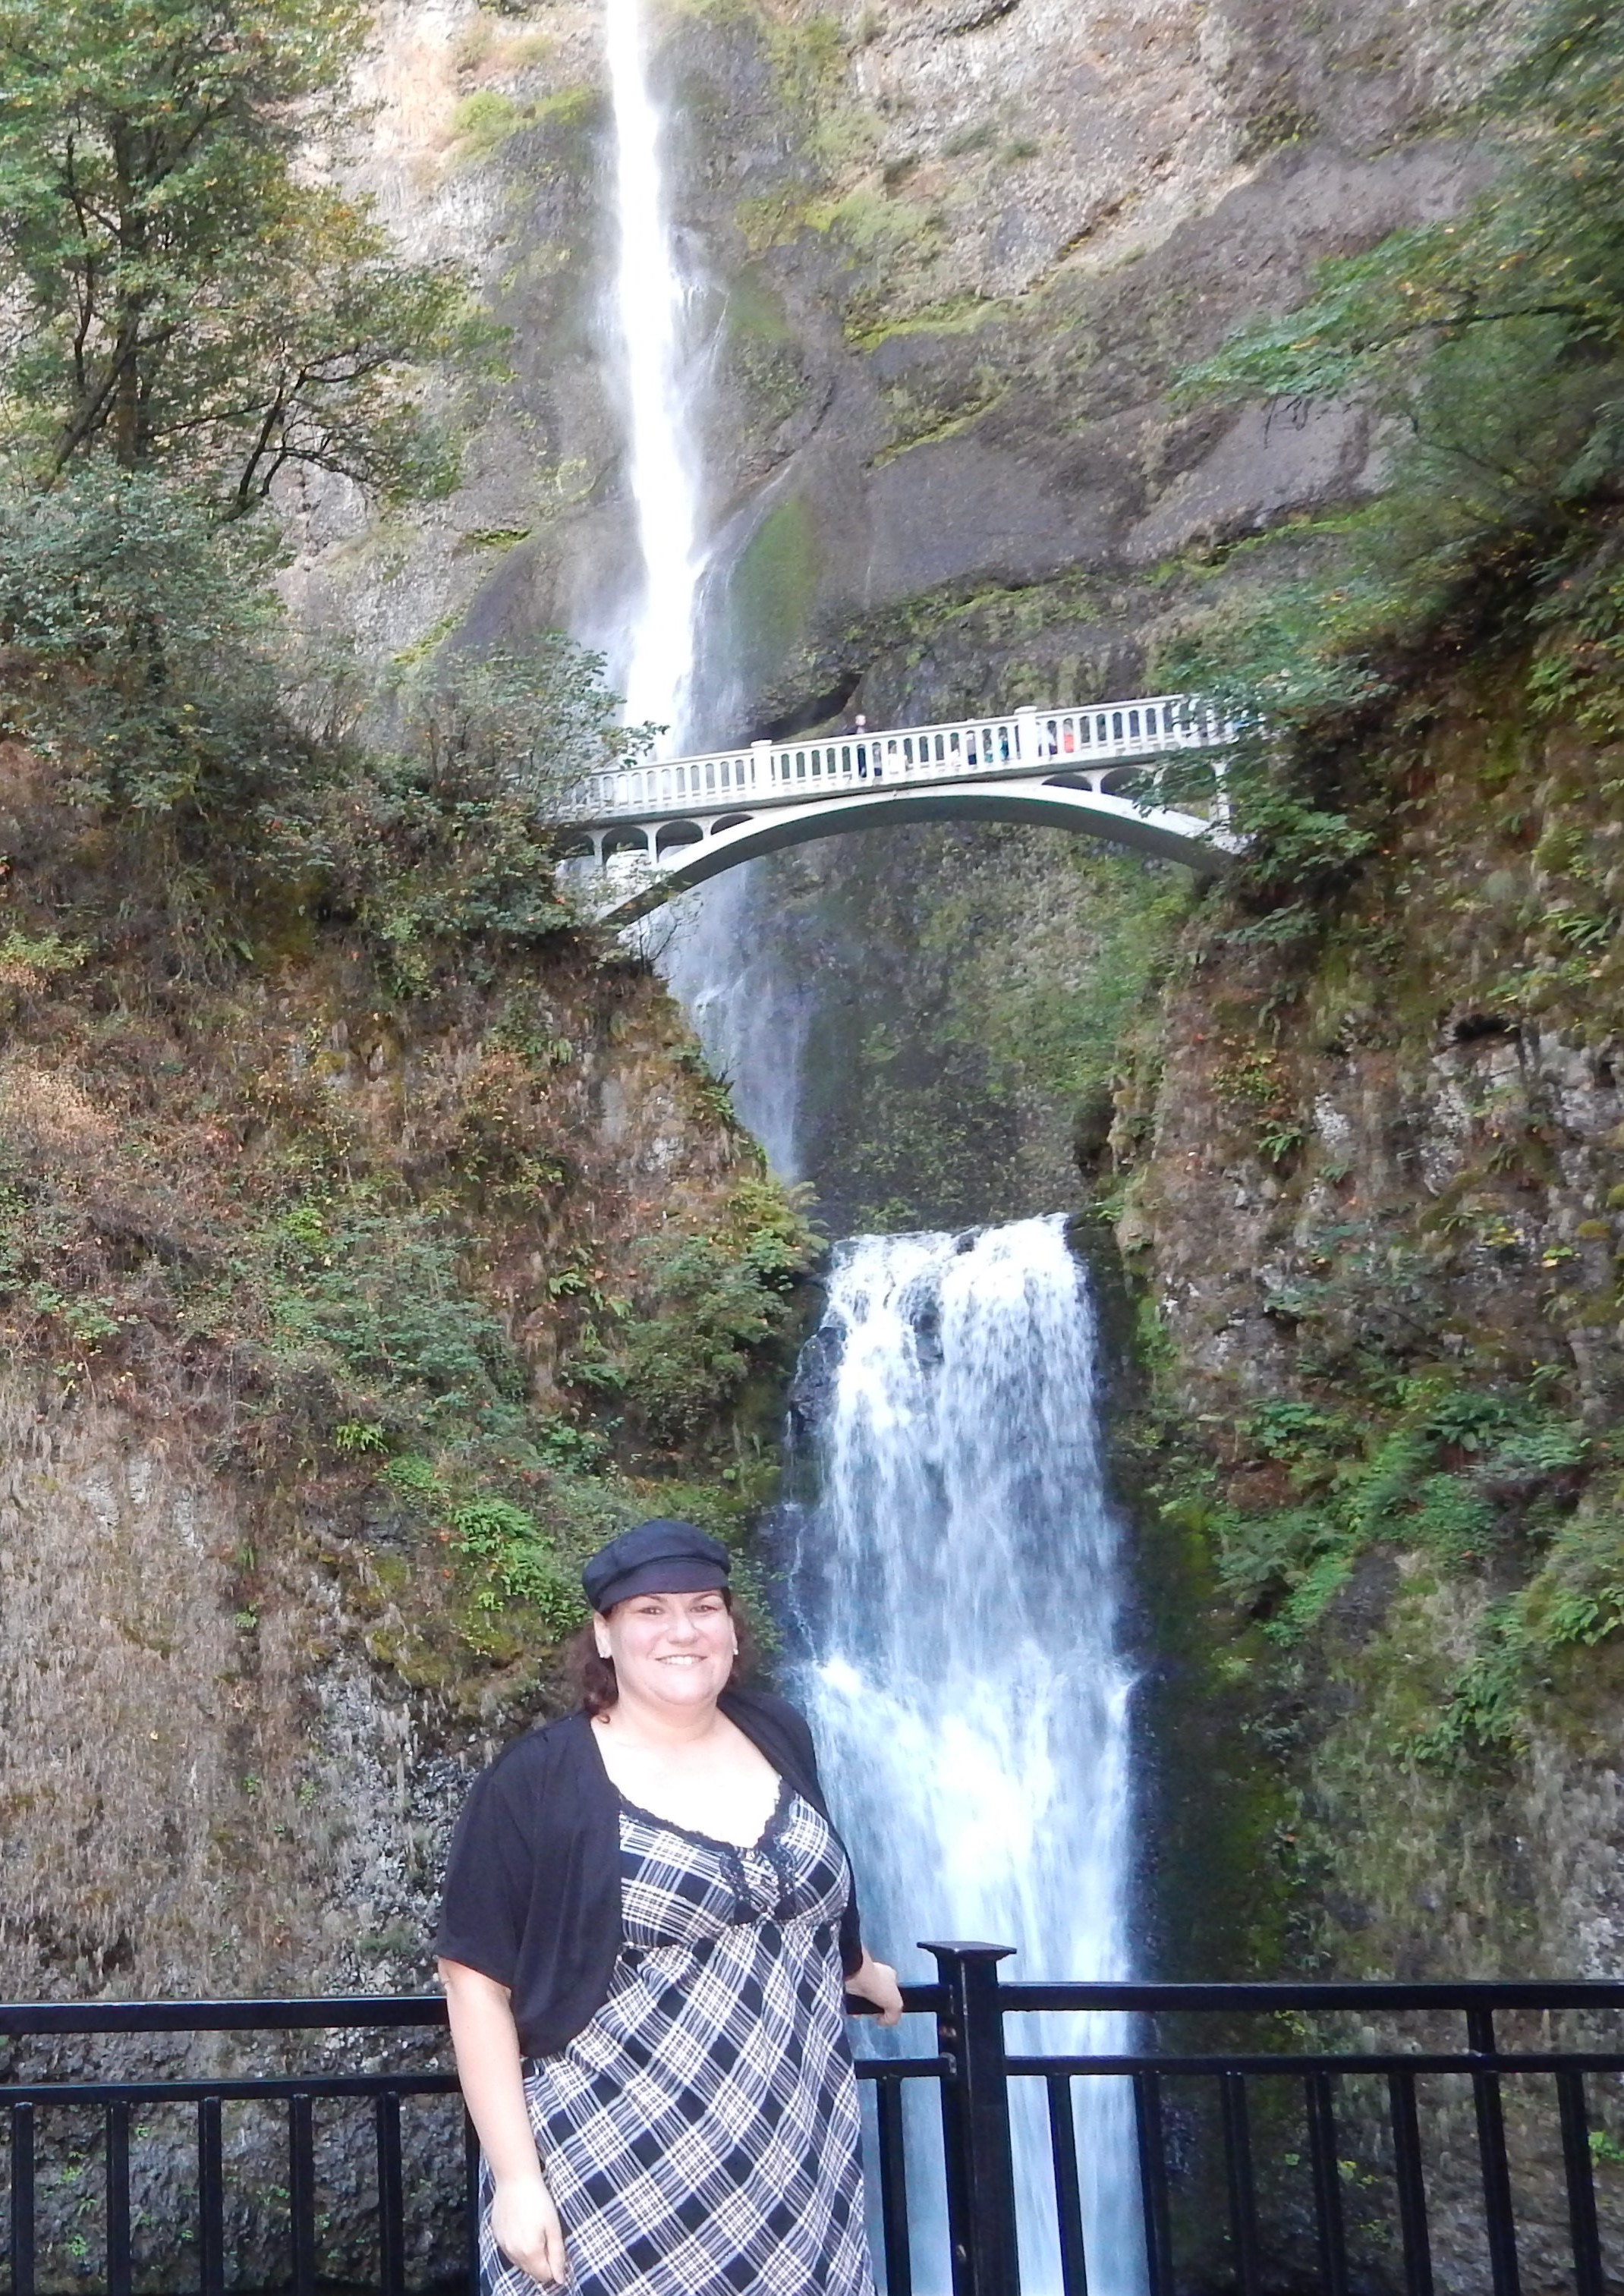 Pictures don't do Multnomah Falls justice, but scroll down until the end for more.